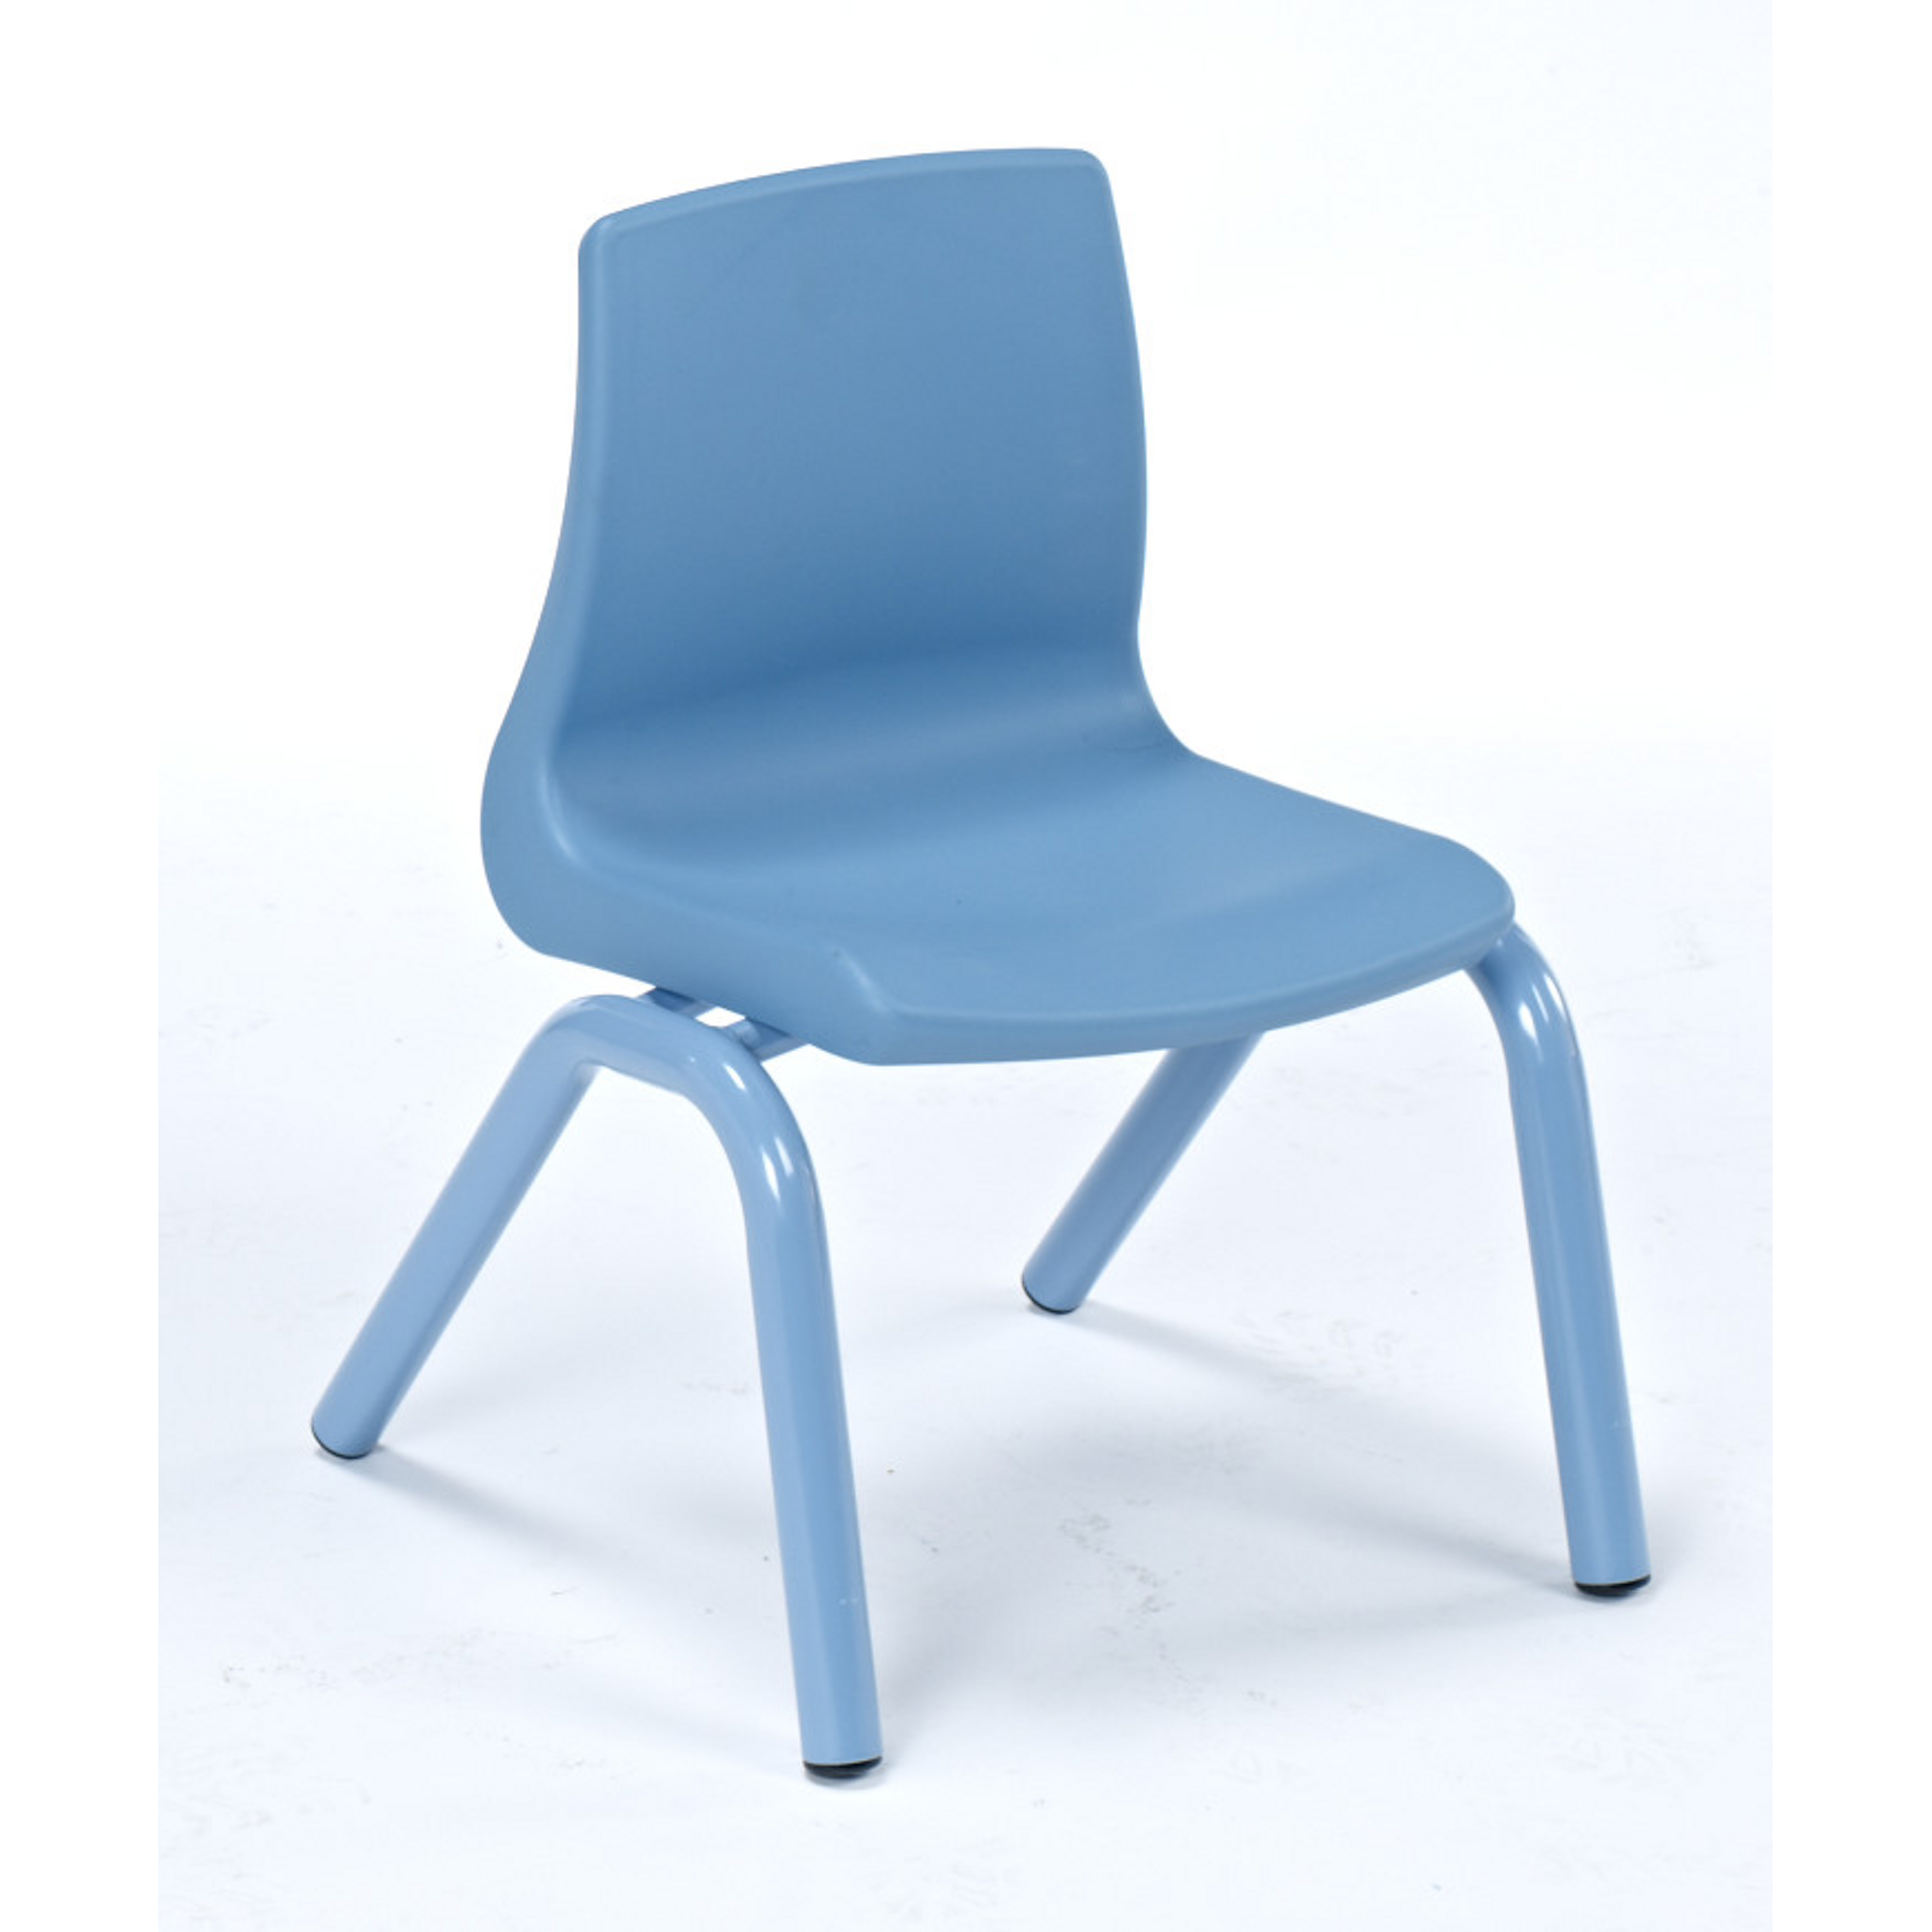 Harlequin Chairs Size C Seat Height 350mm Soft Blue